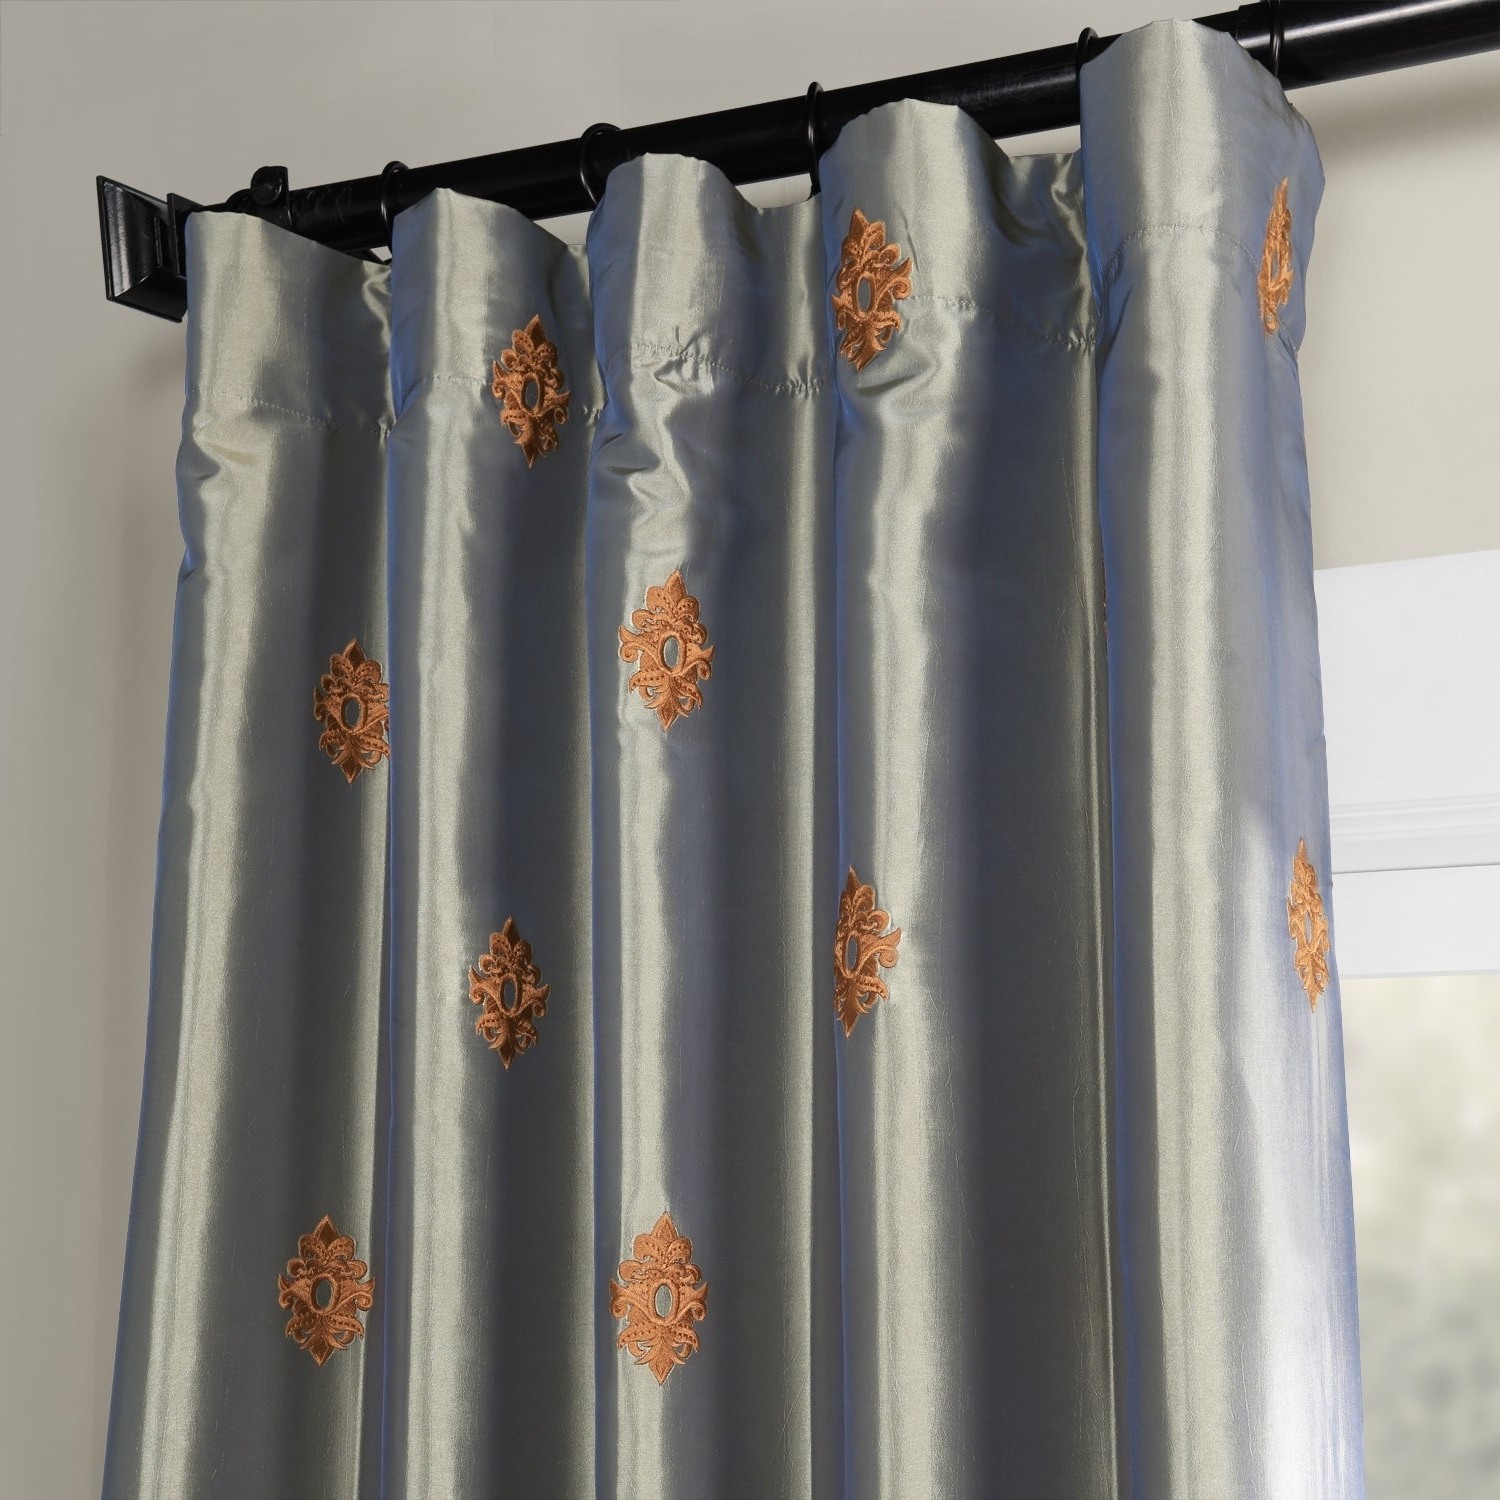 Best And Newest Porch & Den Lorentz Silver 24 Inch Tier Pairs For Details About Porch & Den Oberst Embroidered Taffeta Curtain Panel (View 16 of 20)